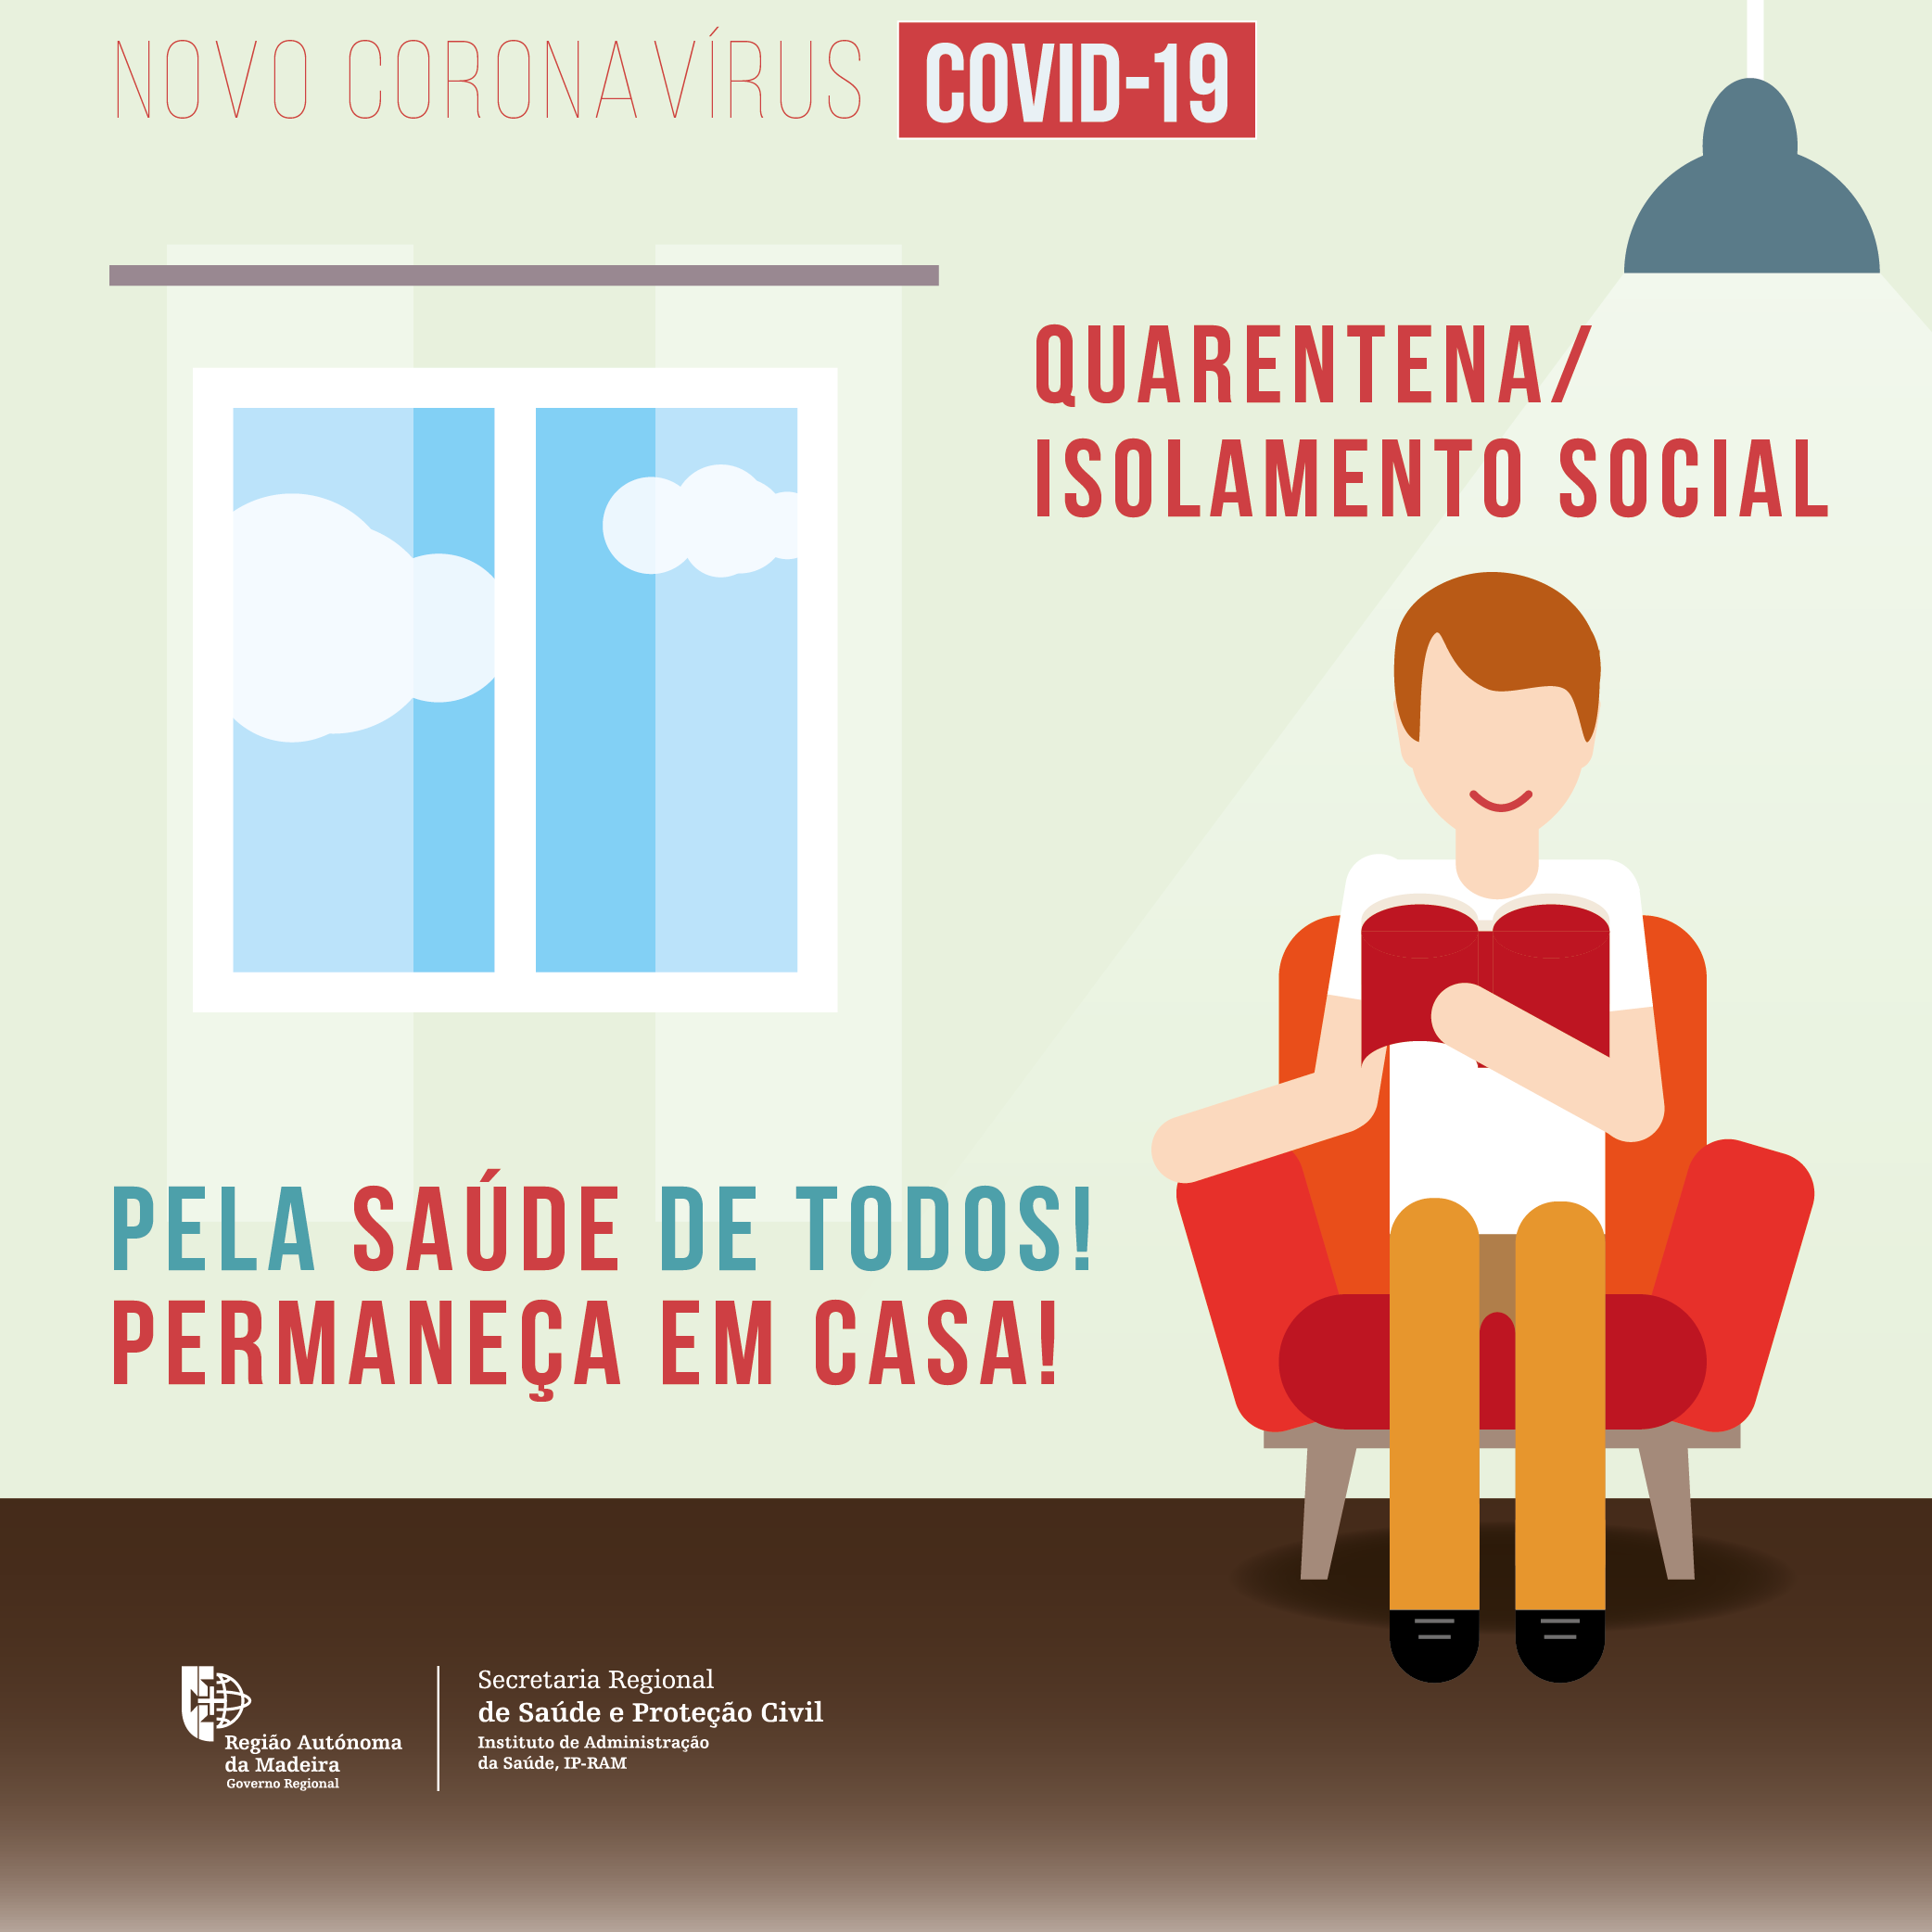 COVID-19 - Desconfinamento